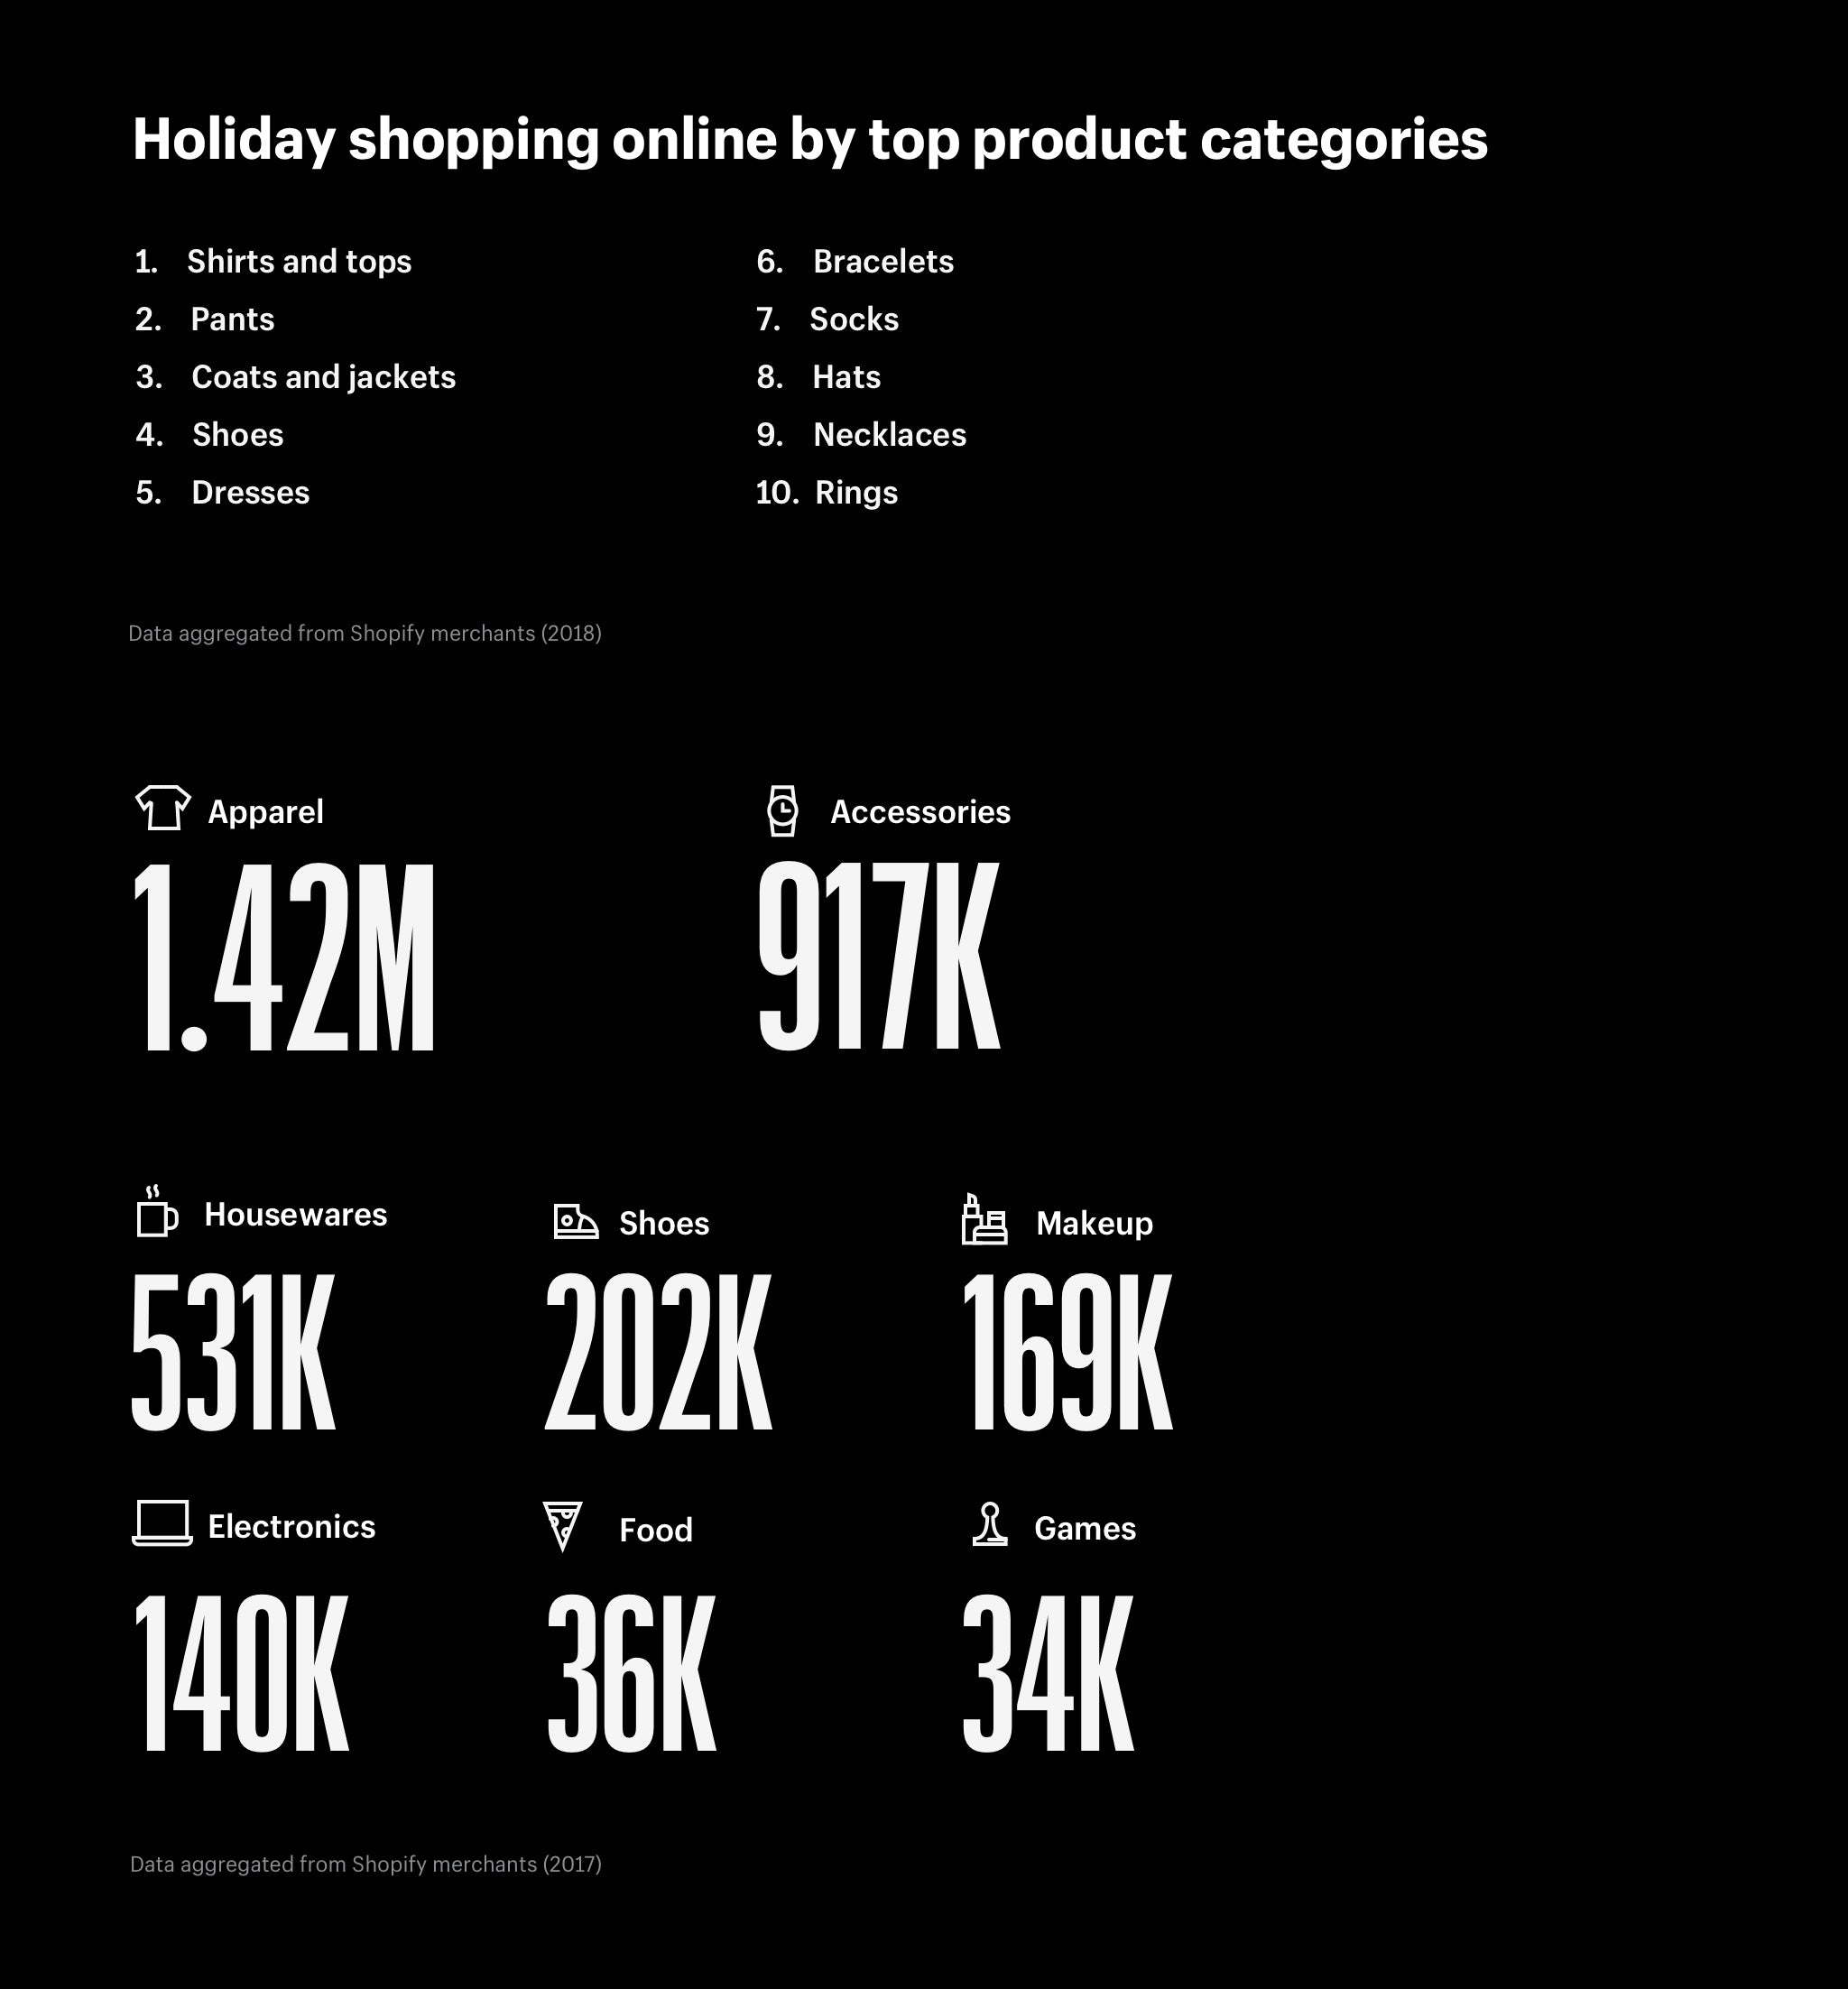 Fashion ecommerce leads the way on Black Friday Cyber Monday